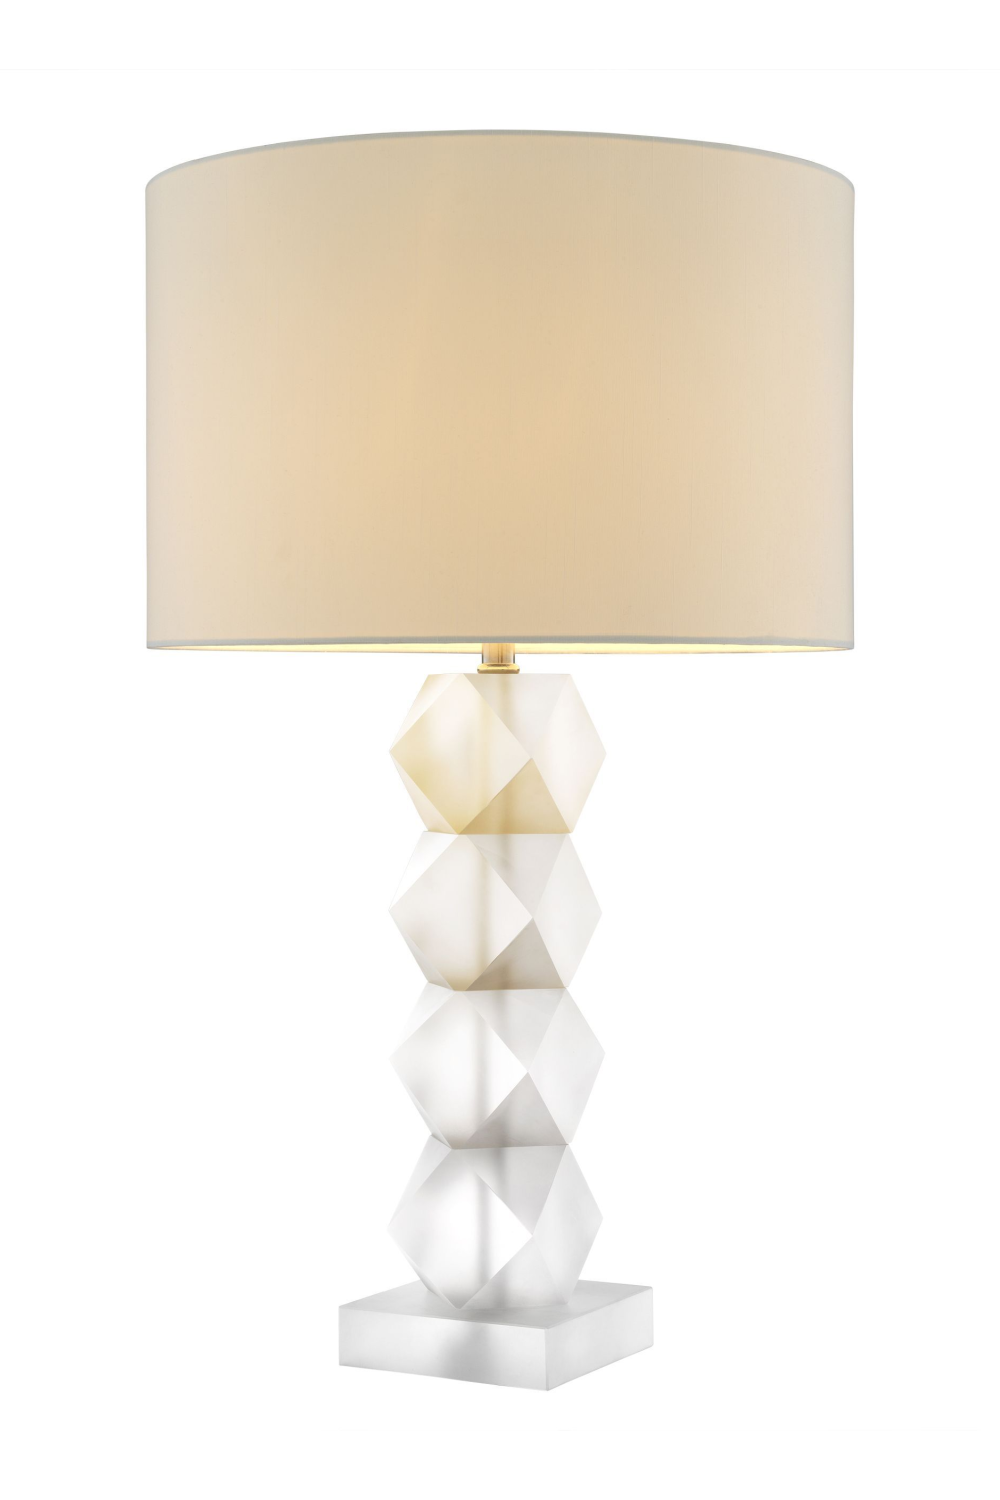 Frosted Glass Table Lamp | Eichholtz Whealon | OROA Modern Furniture